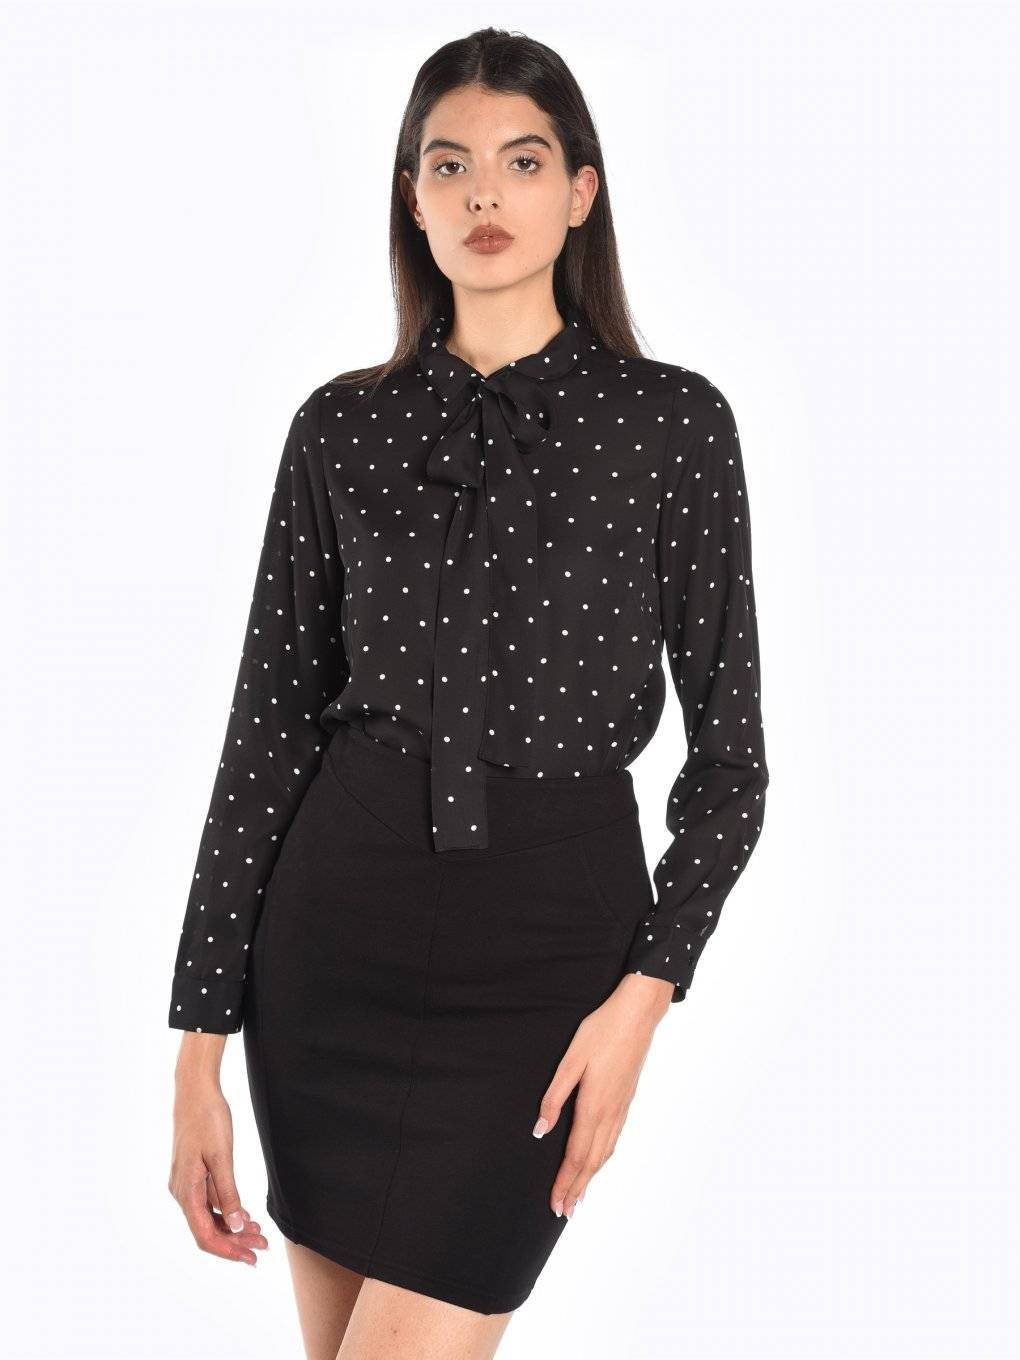 Polka dot print blouse with bow